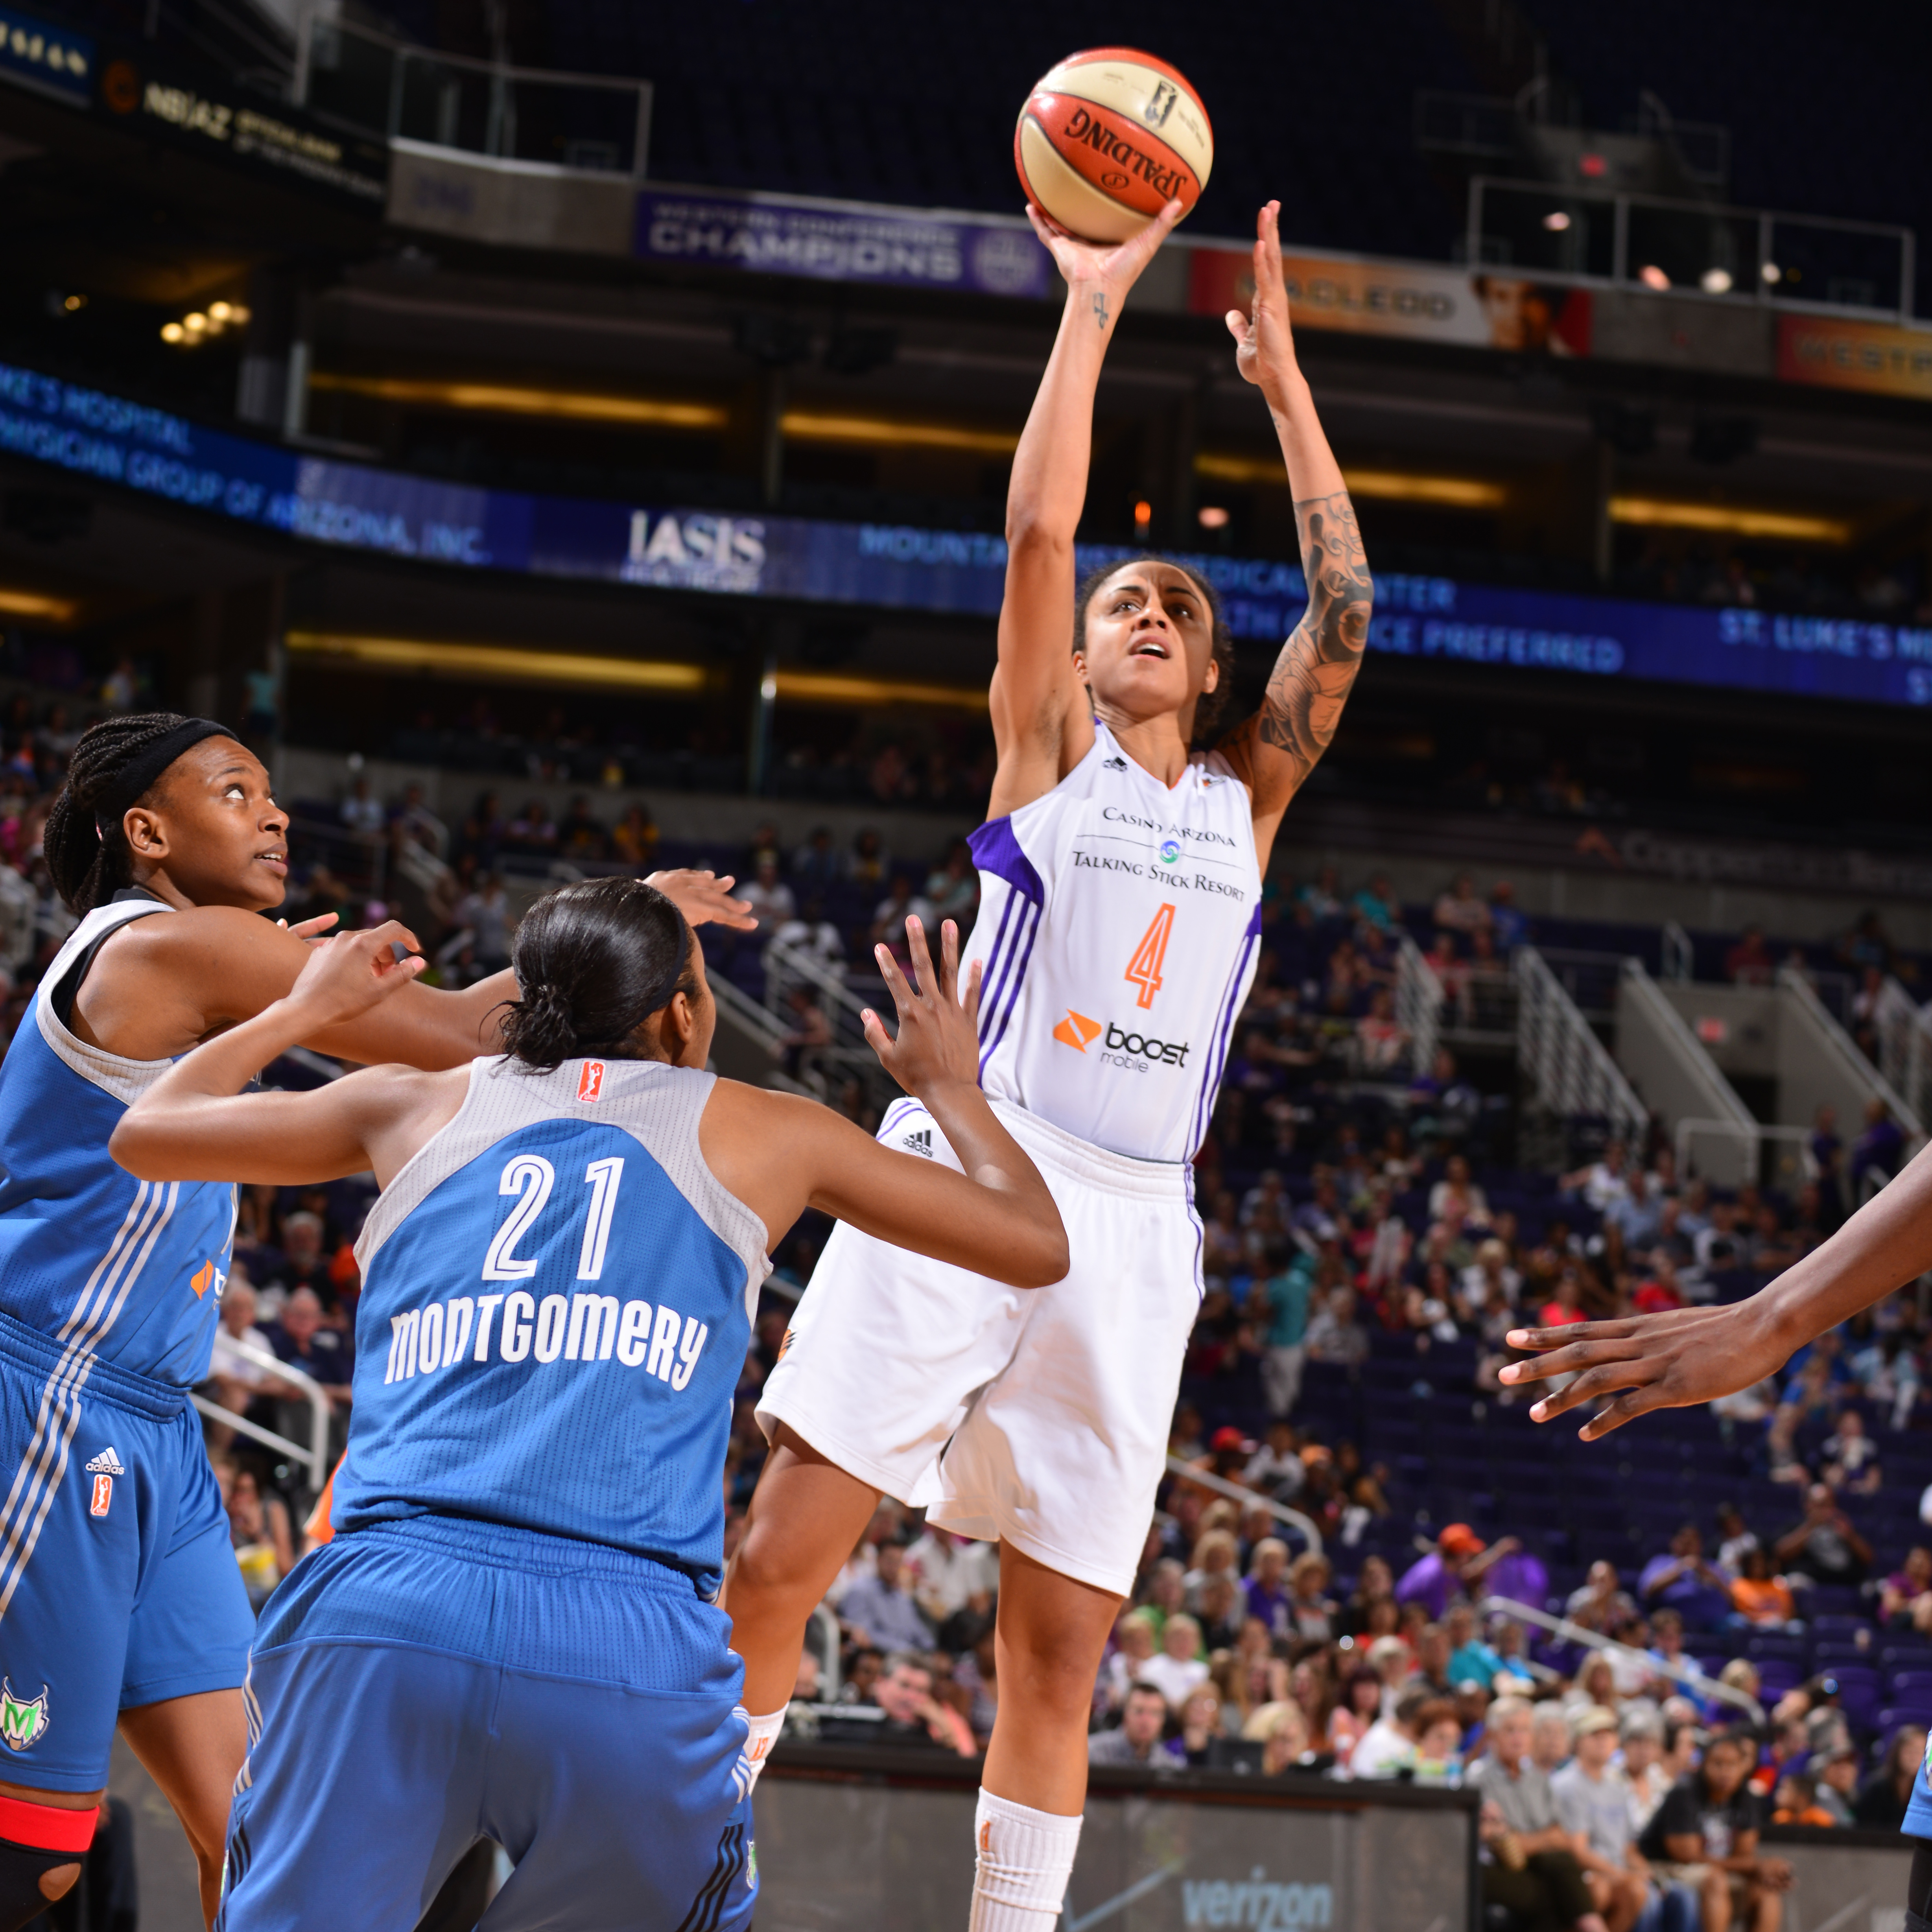 Mercury forward Candice Dupree had a rather quiet game for Phoenix, finishing with just nine points and six rebounds in 26 minutes of play.